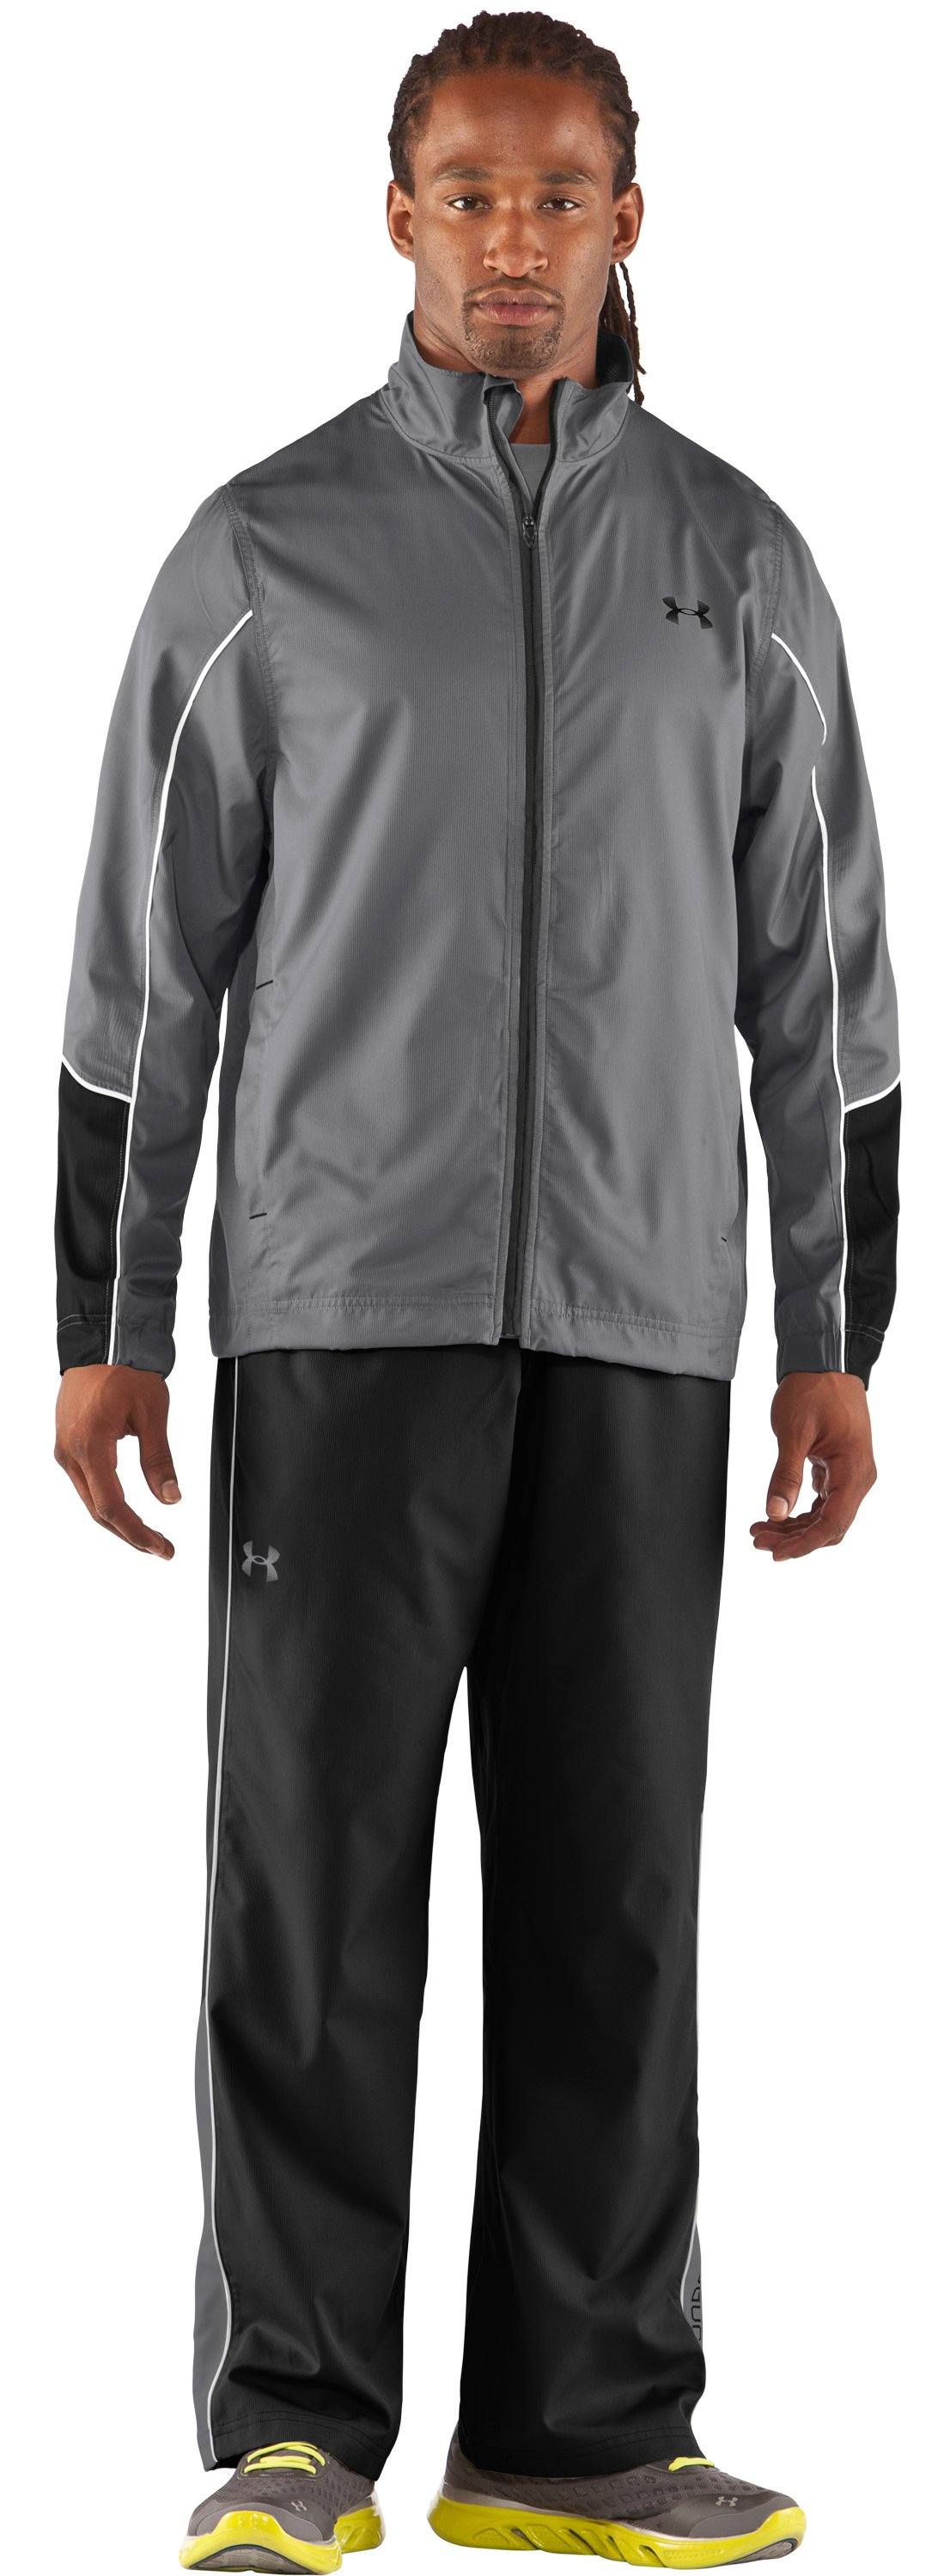 Men's UA Bandito Woven Warm-Up Jacket, Graphite, zoomed image